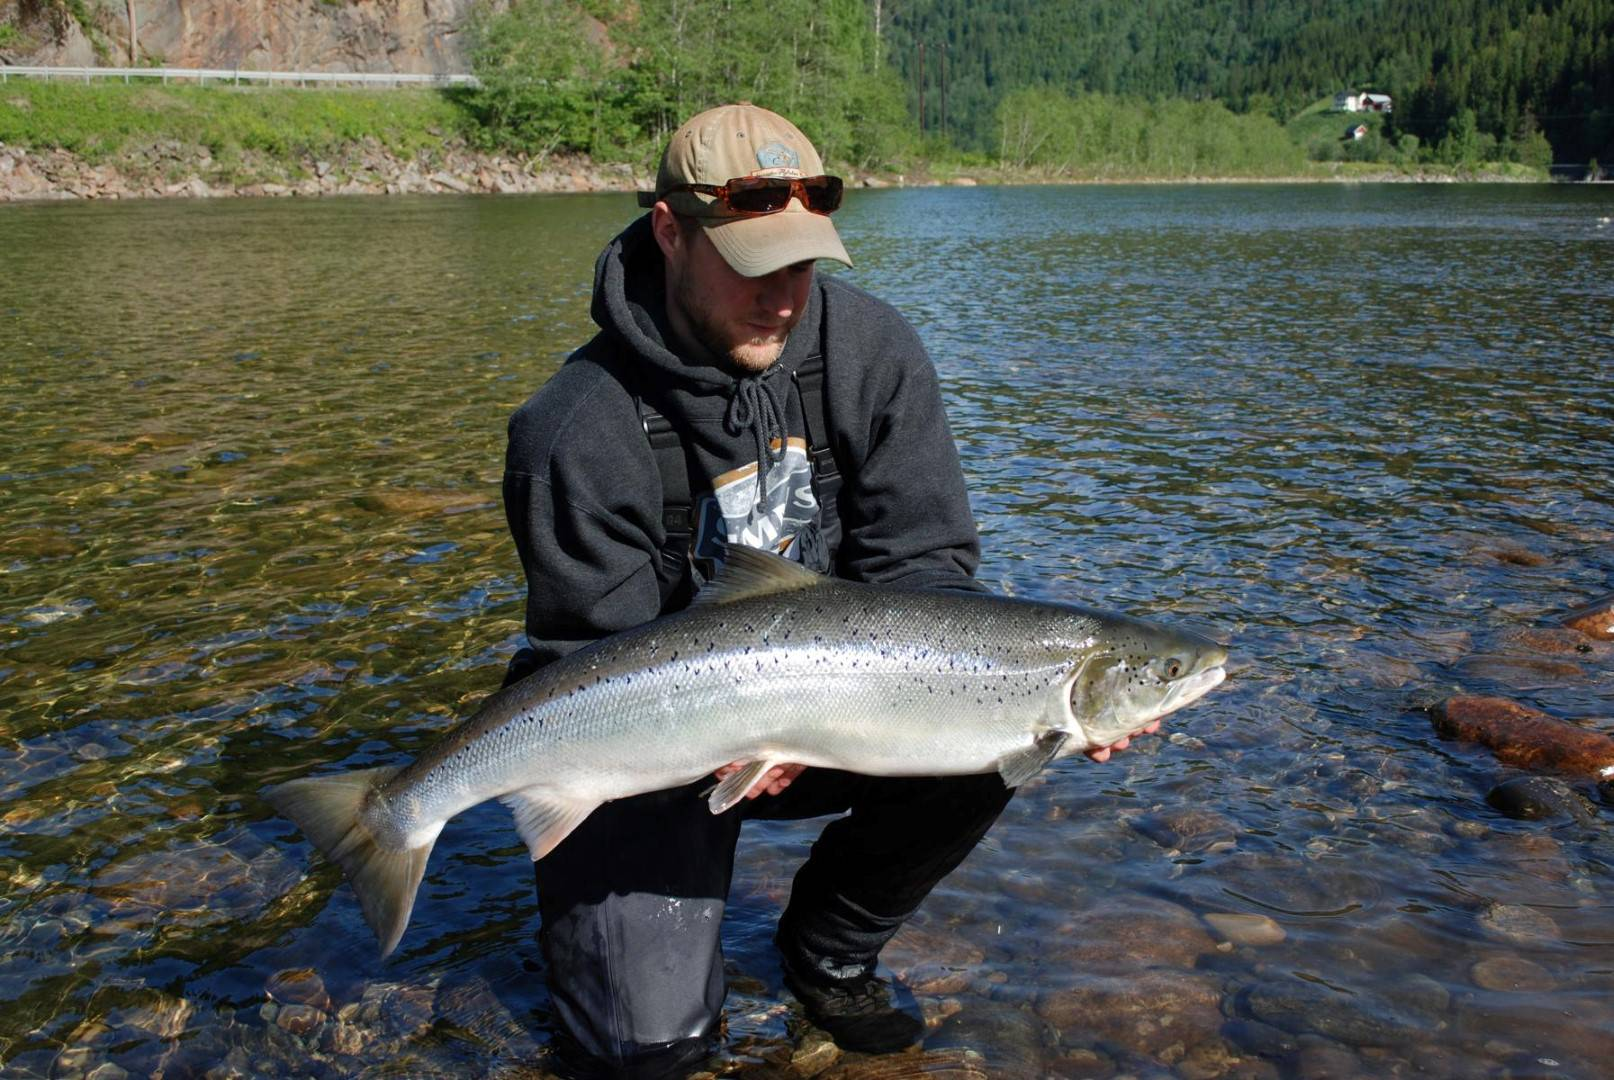 Daniel Persson with his first salmon of his week